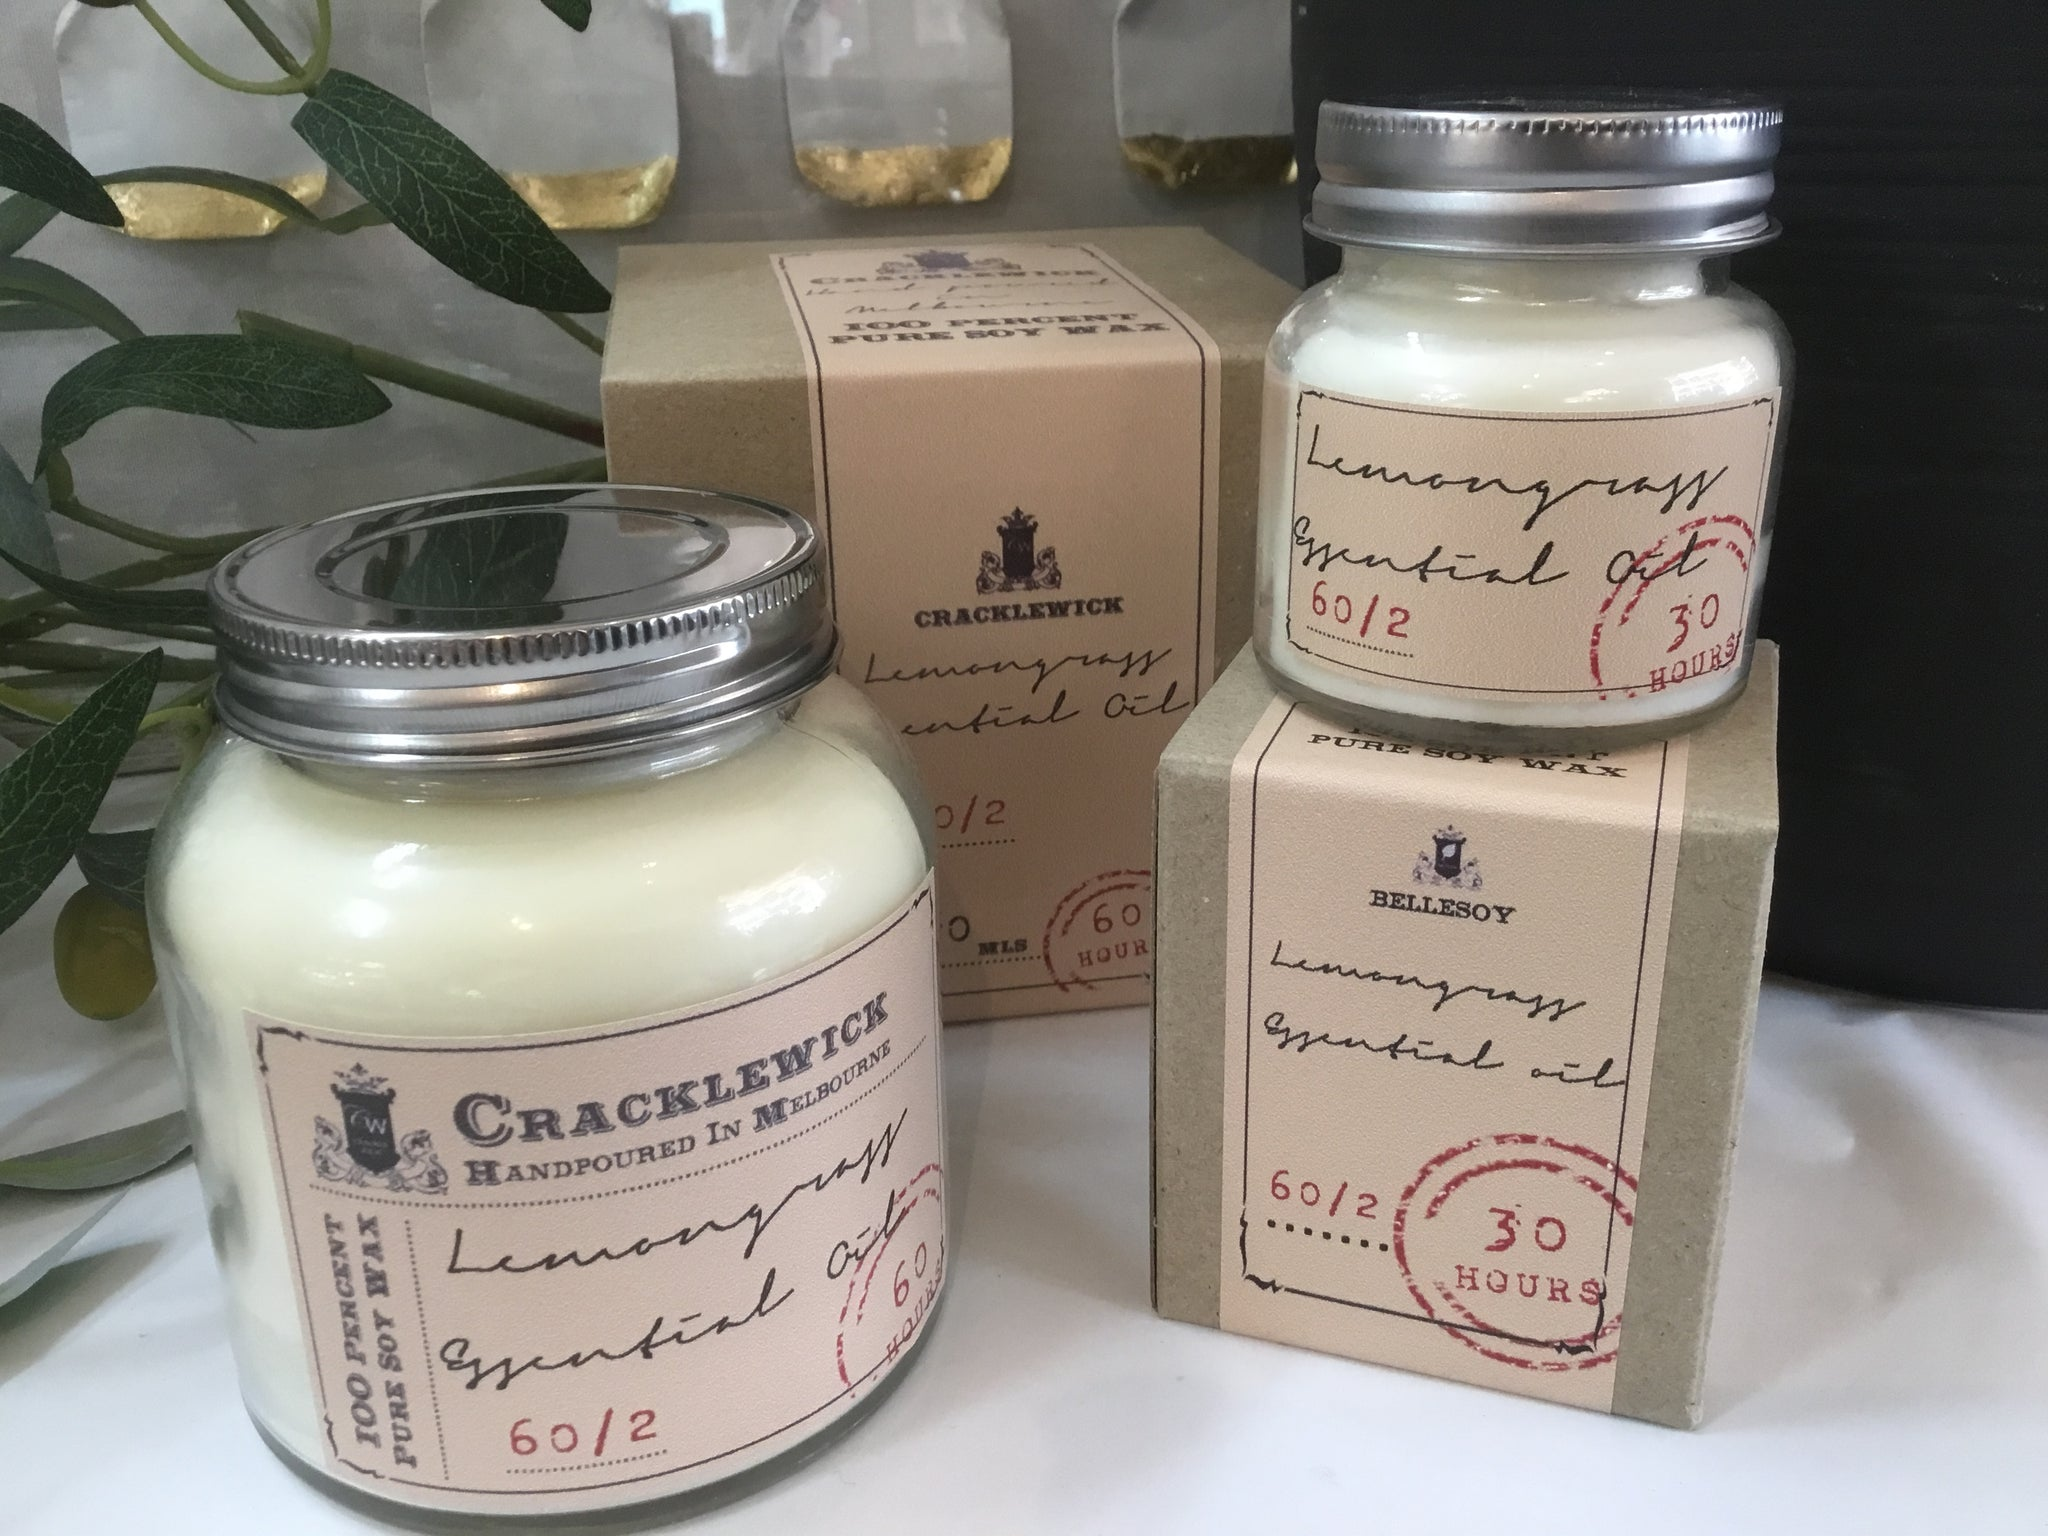 Vintage Collection Cracklewick Soy Candle - Lemongrass Essential Oil